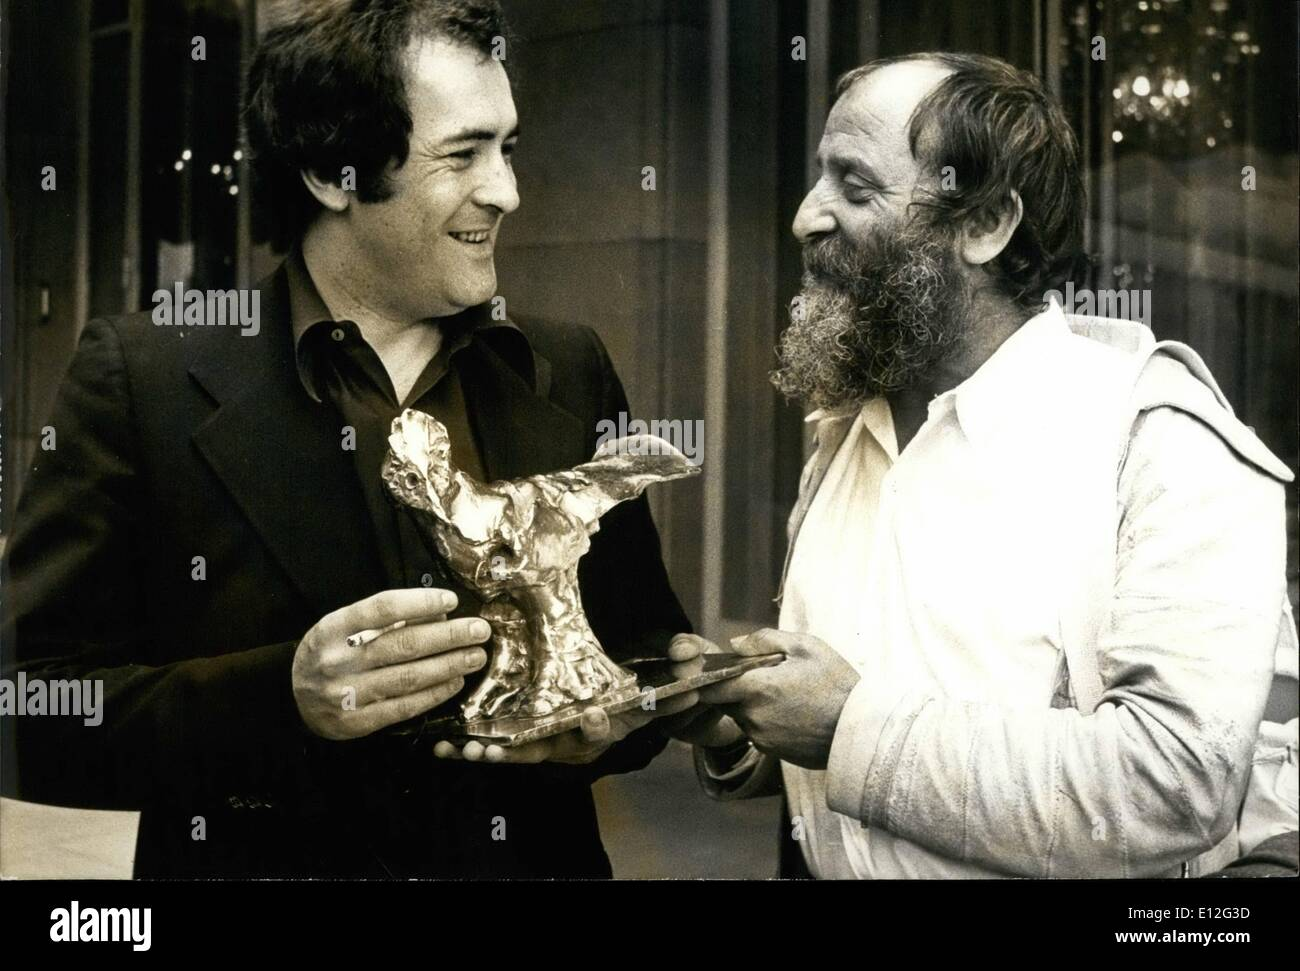 Dec. 26, 2011 - Bernardo Bertolucci with his ''Bird'' sculpted by Cezar for his film the last tango the prize of the ''Prix Raoul Levy'' Given out each year for the best Mis En scene of the year - Stock Image